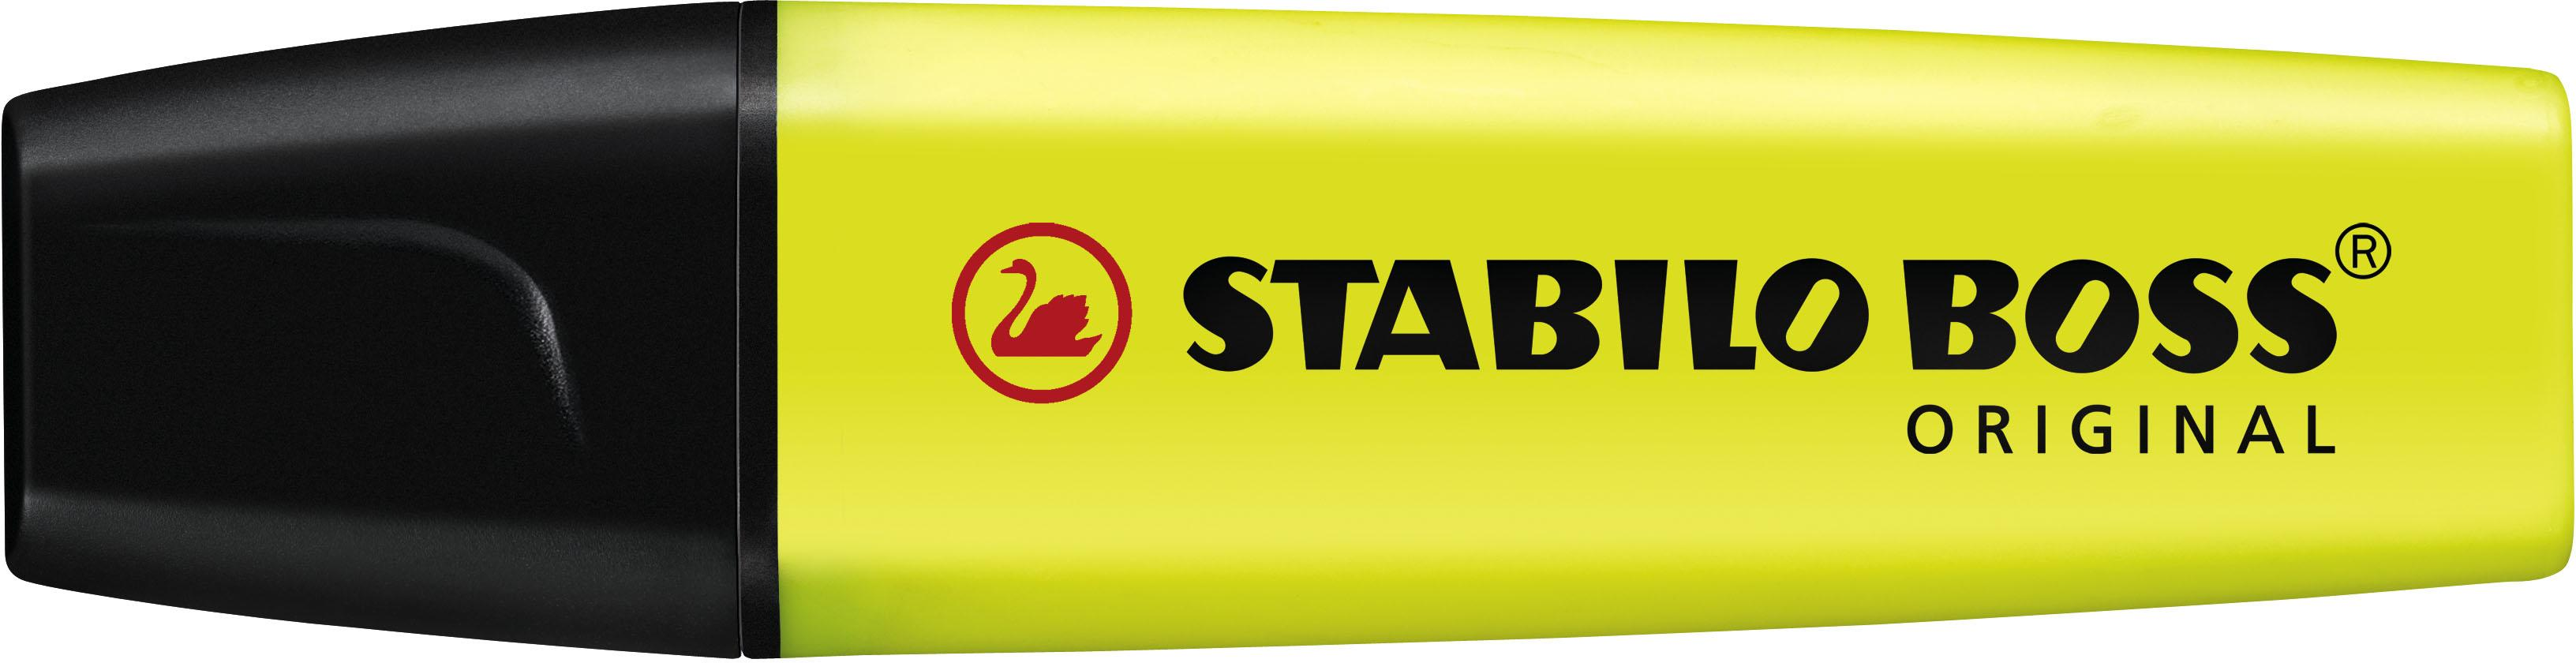 Stabilo Markeerstift BOSS geel